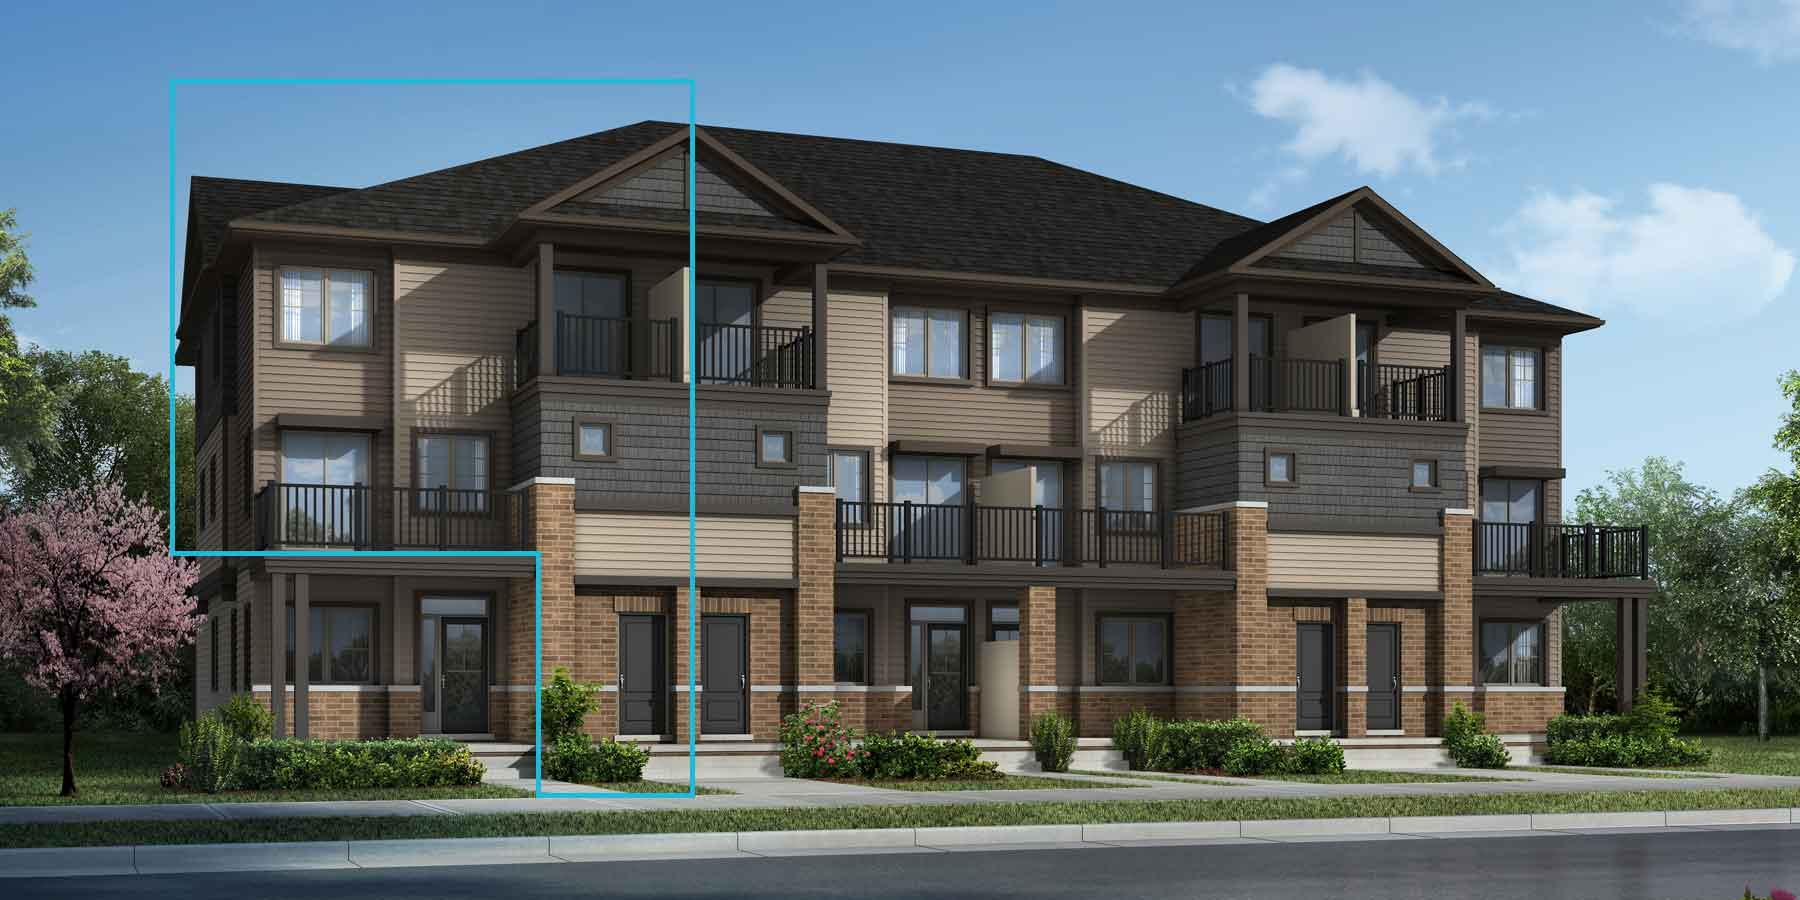 Nightshade Plan TownHomes at Promenade in Barrhaven Ontario by Mattamy Homes